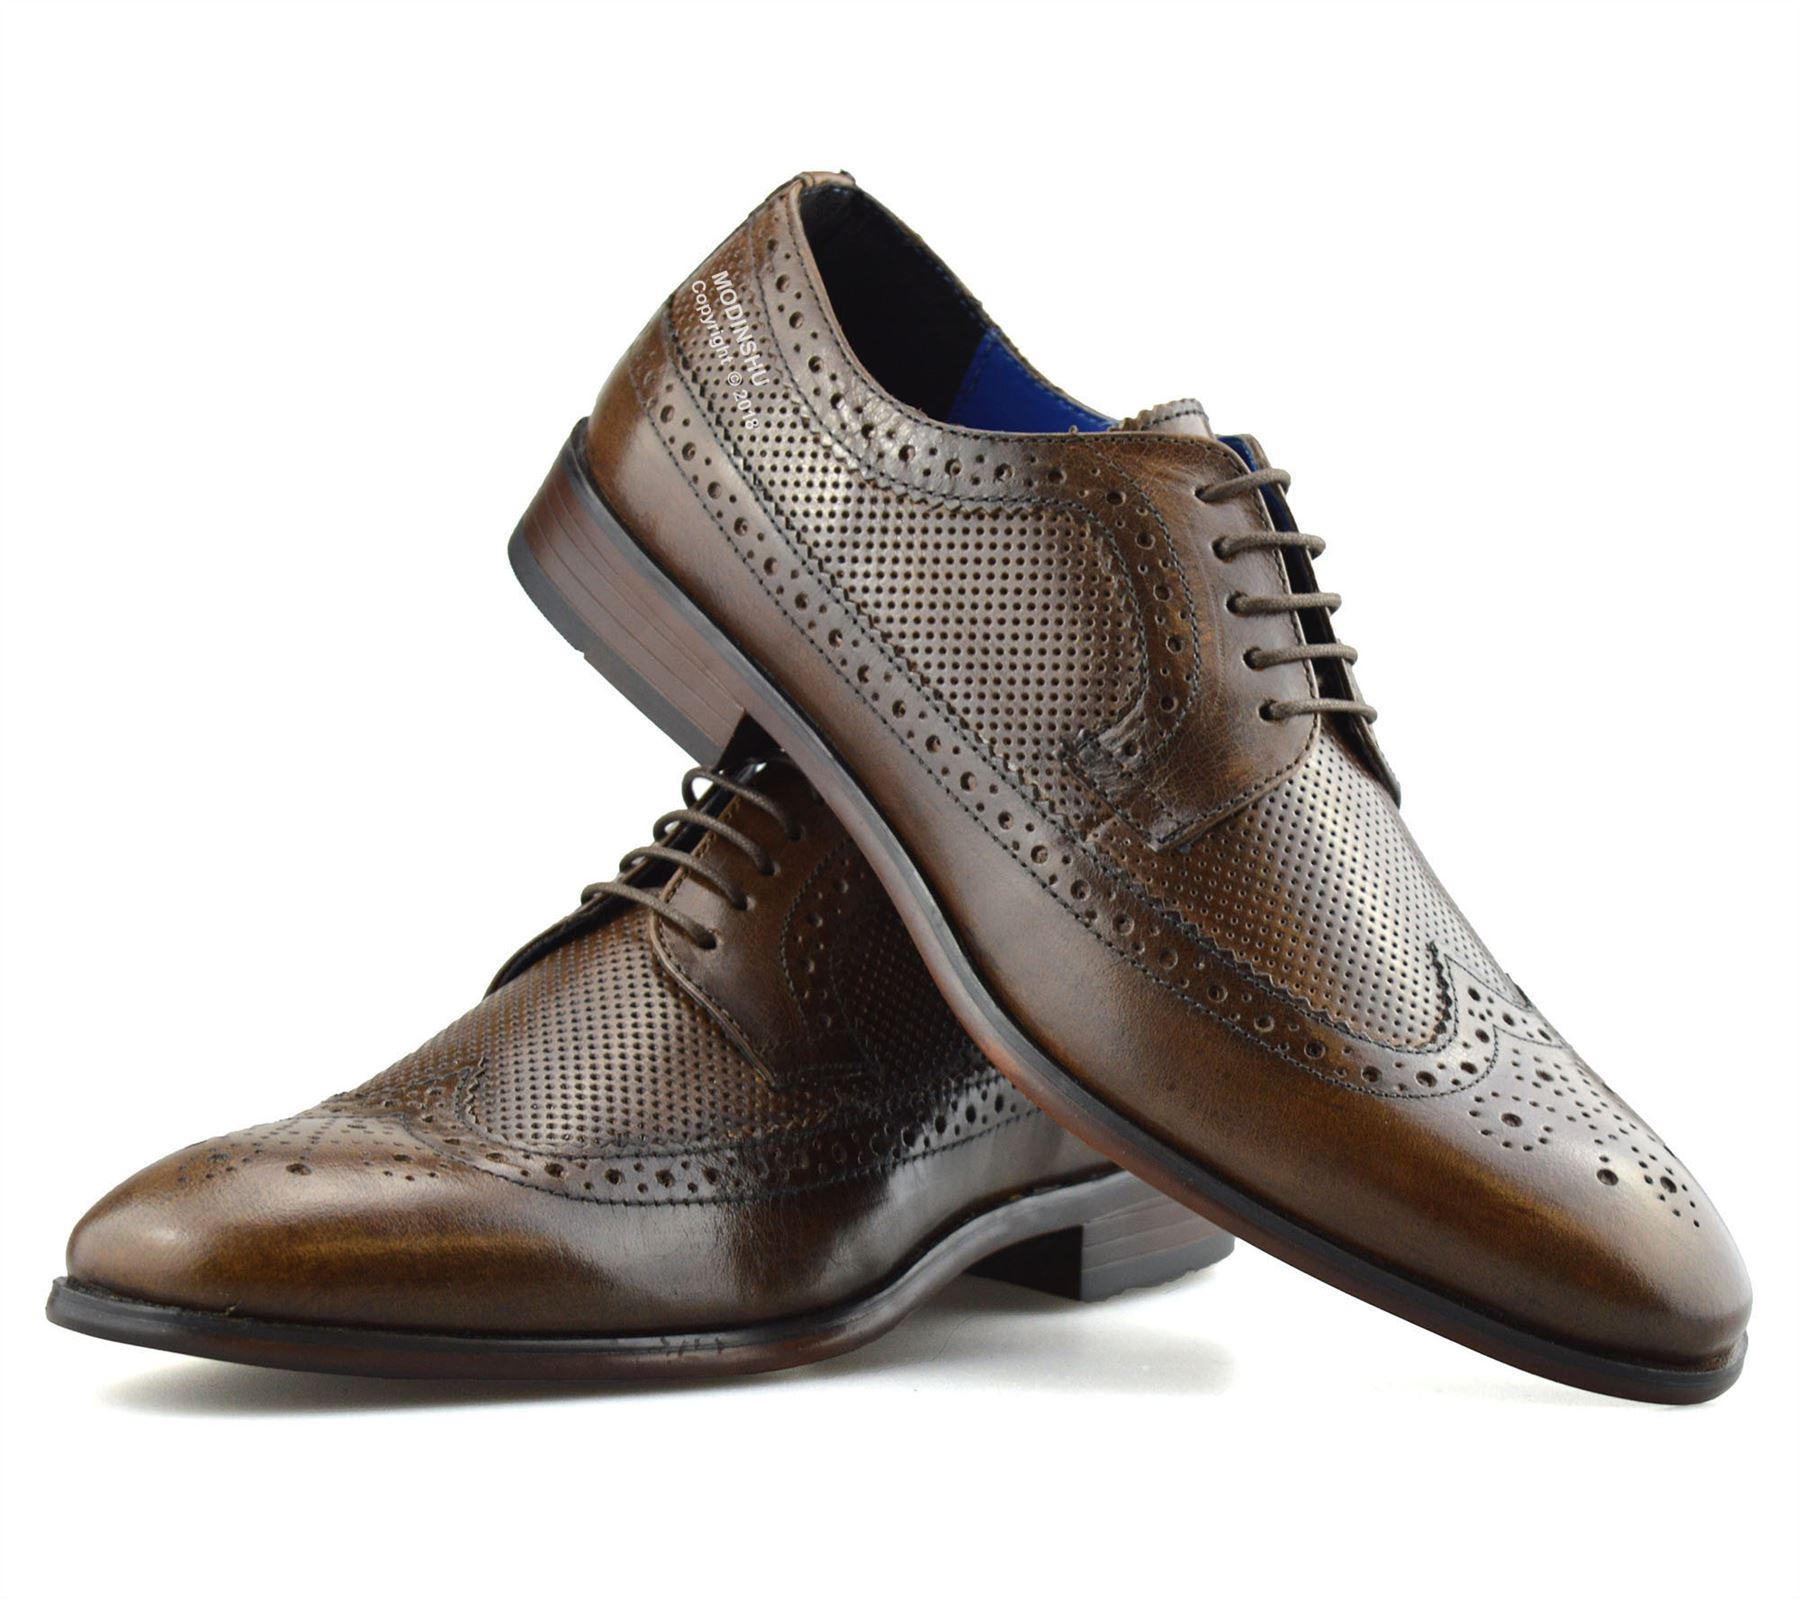 Mens-Leather-Brogues-Smart-Casual-Formal-Office-Lace-Up-Oxford-Brogue-Shoes-Size thumbnail 25